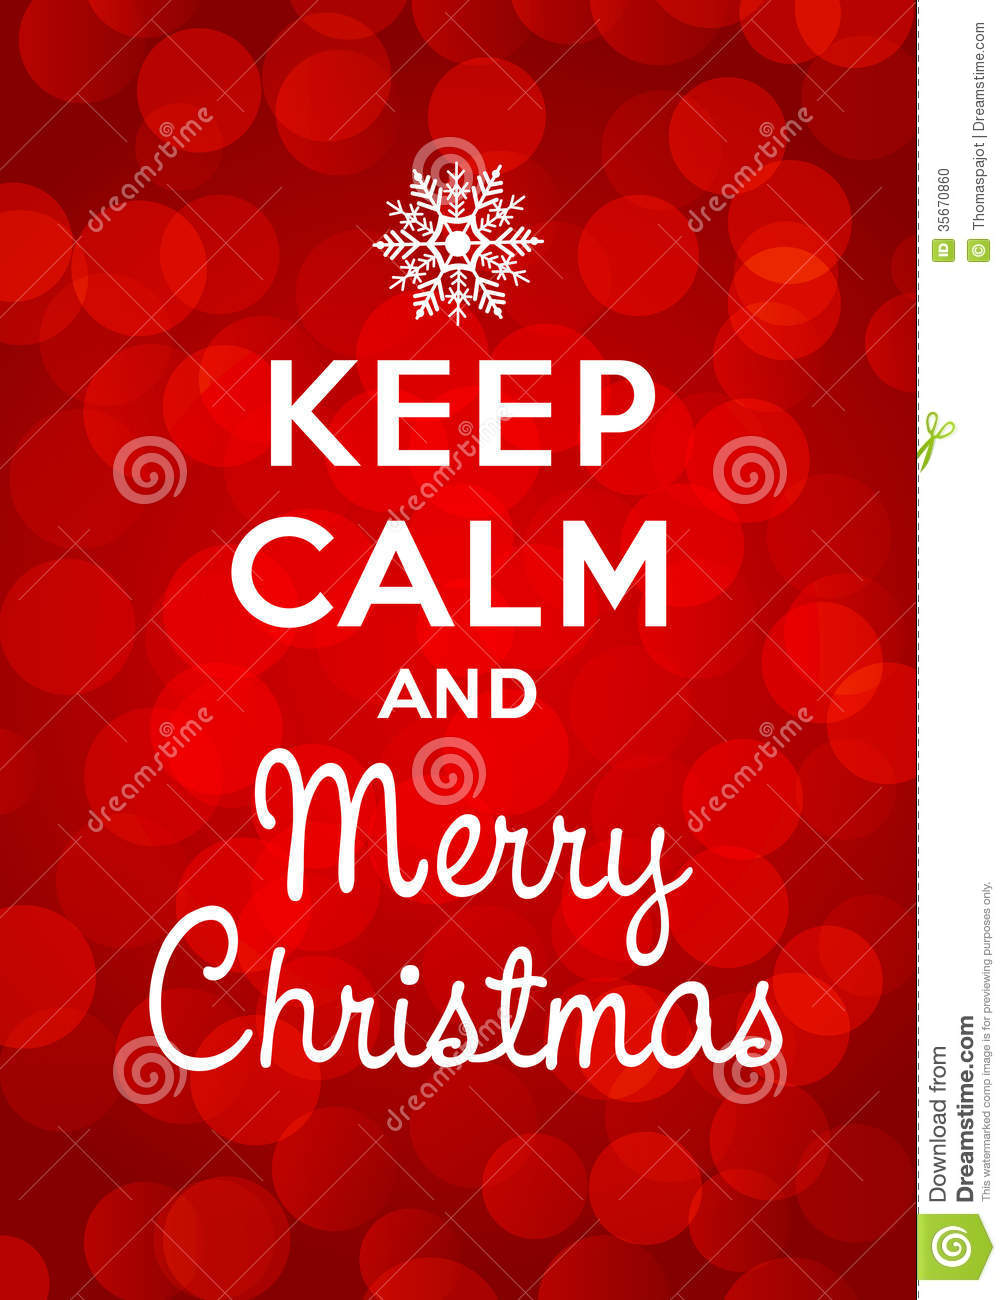 Keep Calm And Merry Christmas Stock Vector - Illustration of merry ...